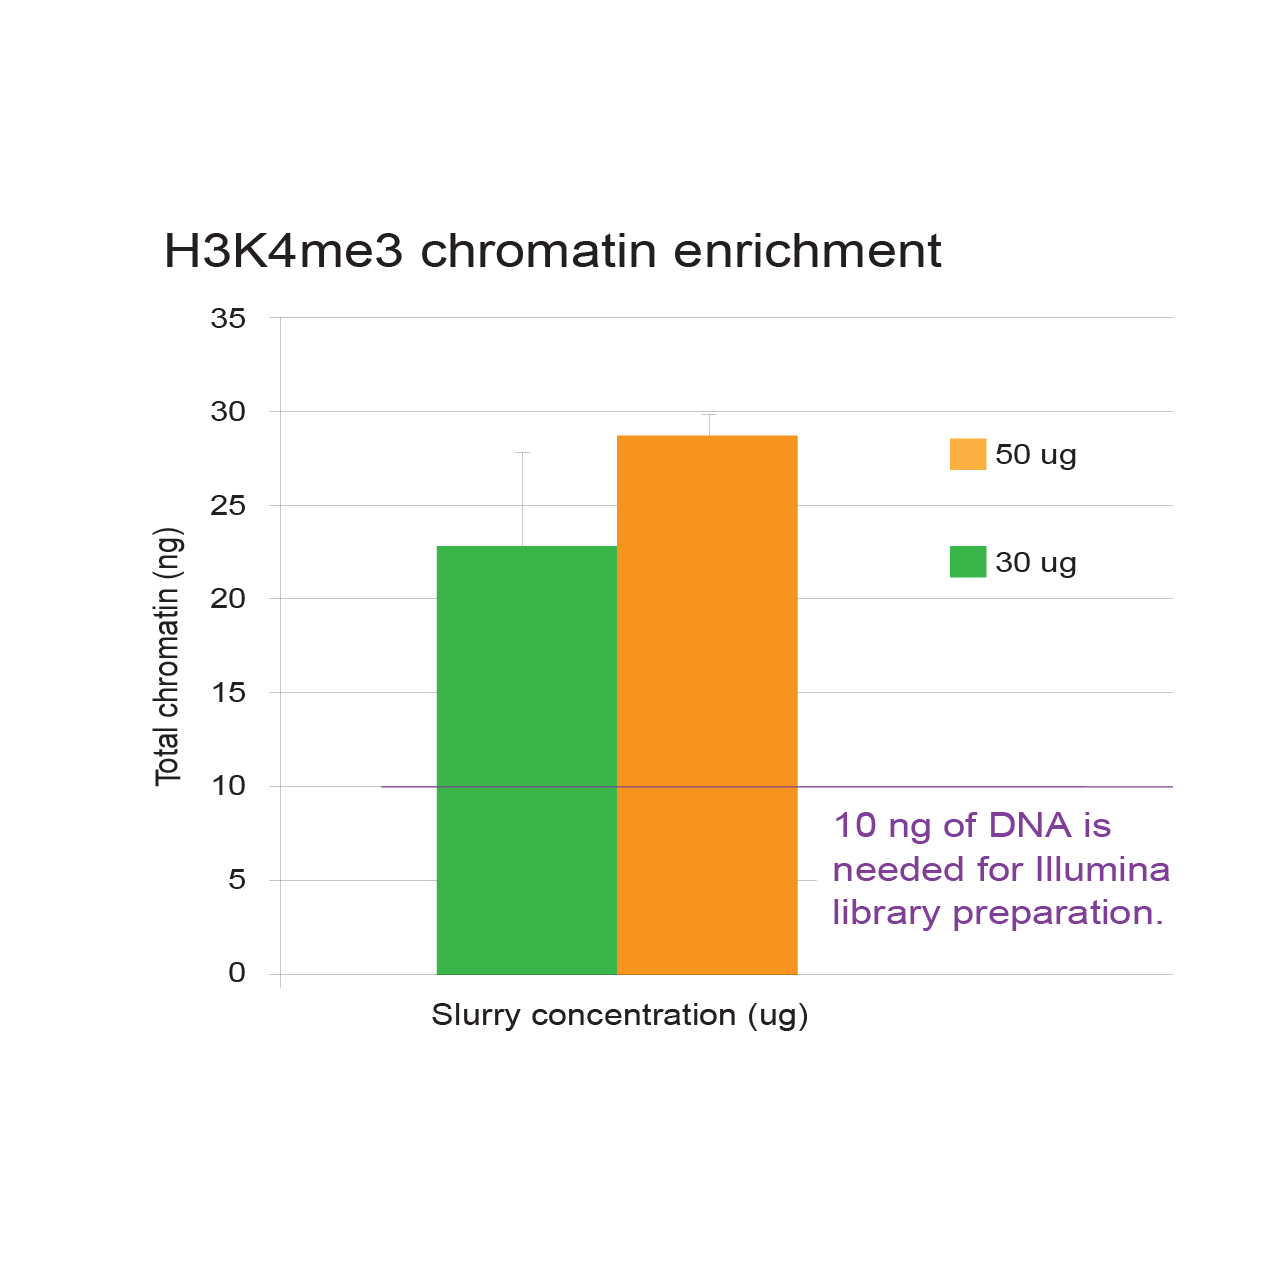 Chromatin enrichment